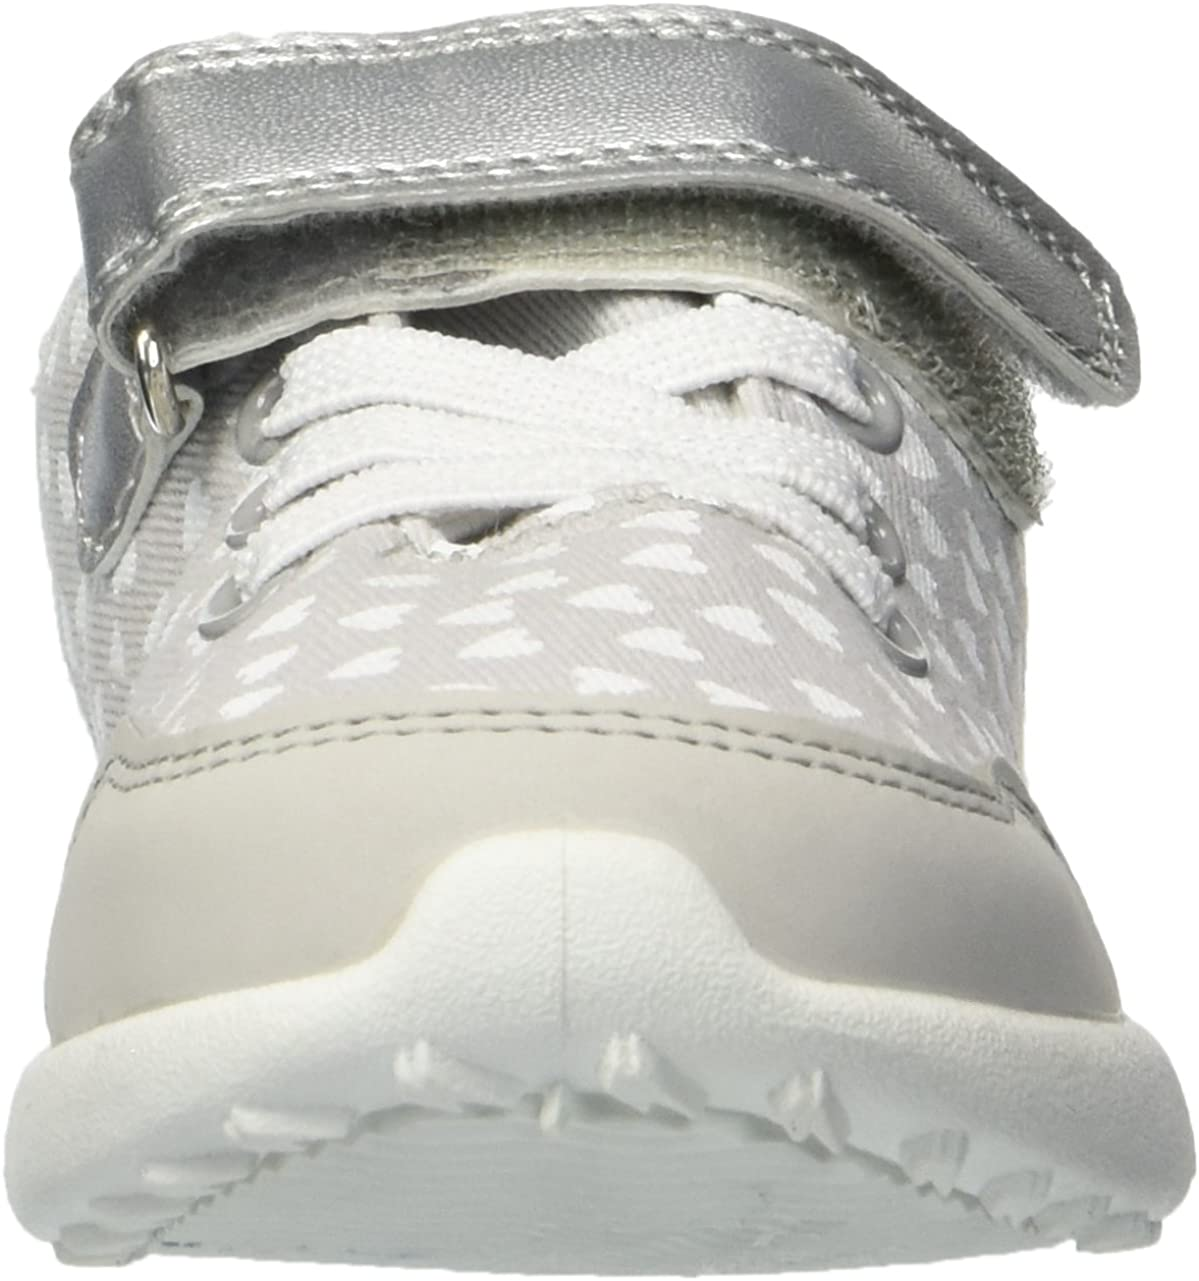 Carters Kids Girls Burst2-g Grey Casual Sneaker